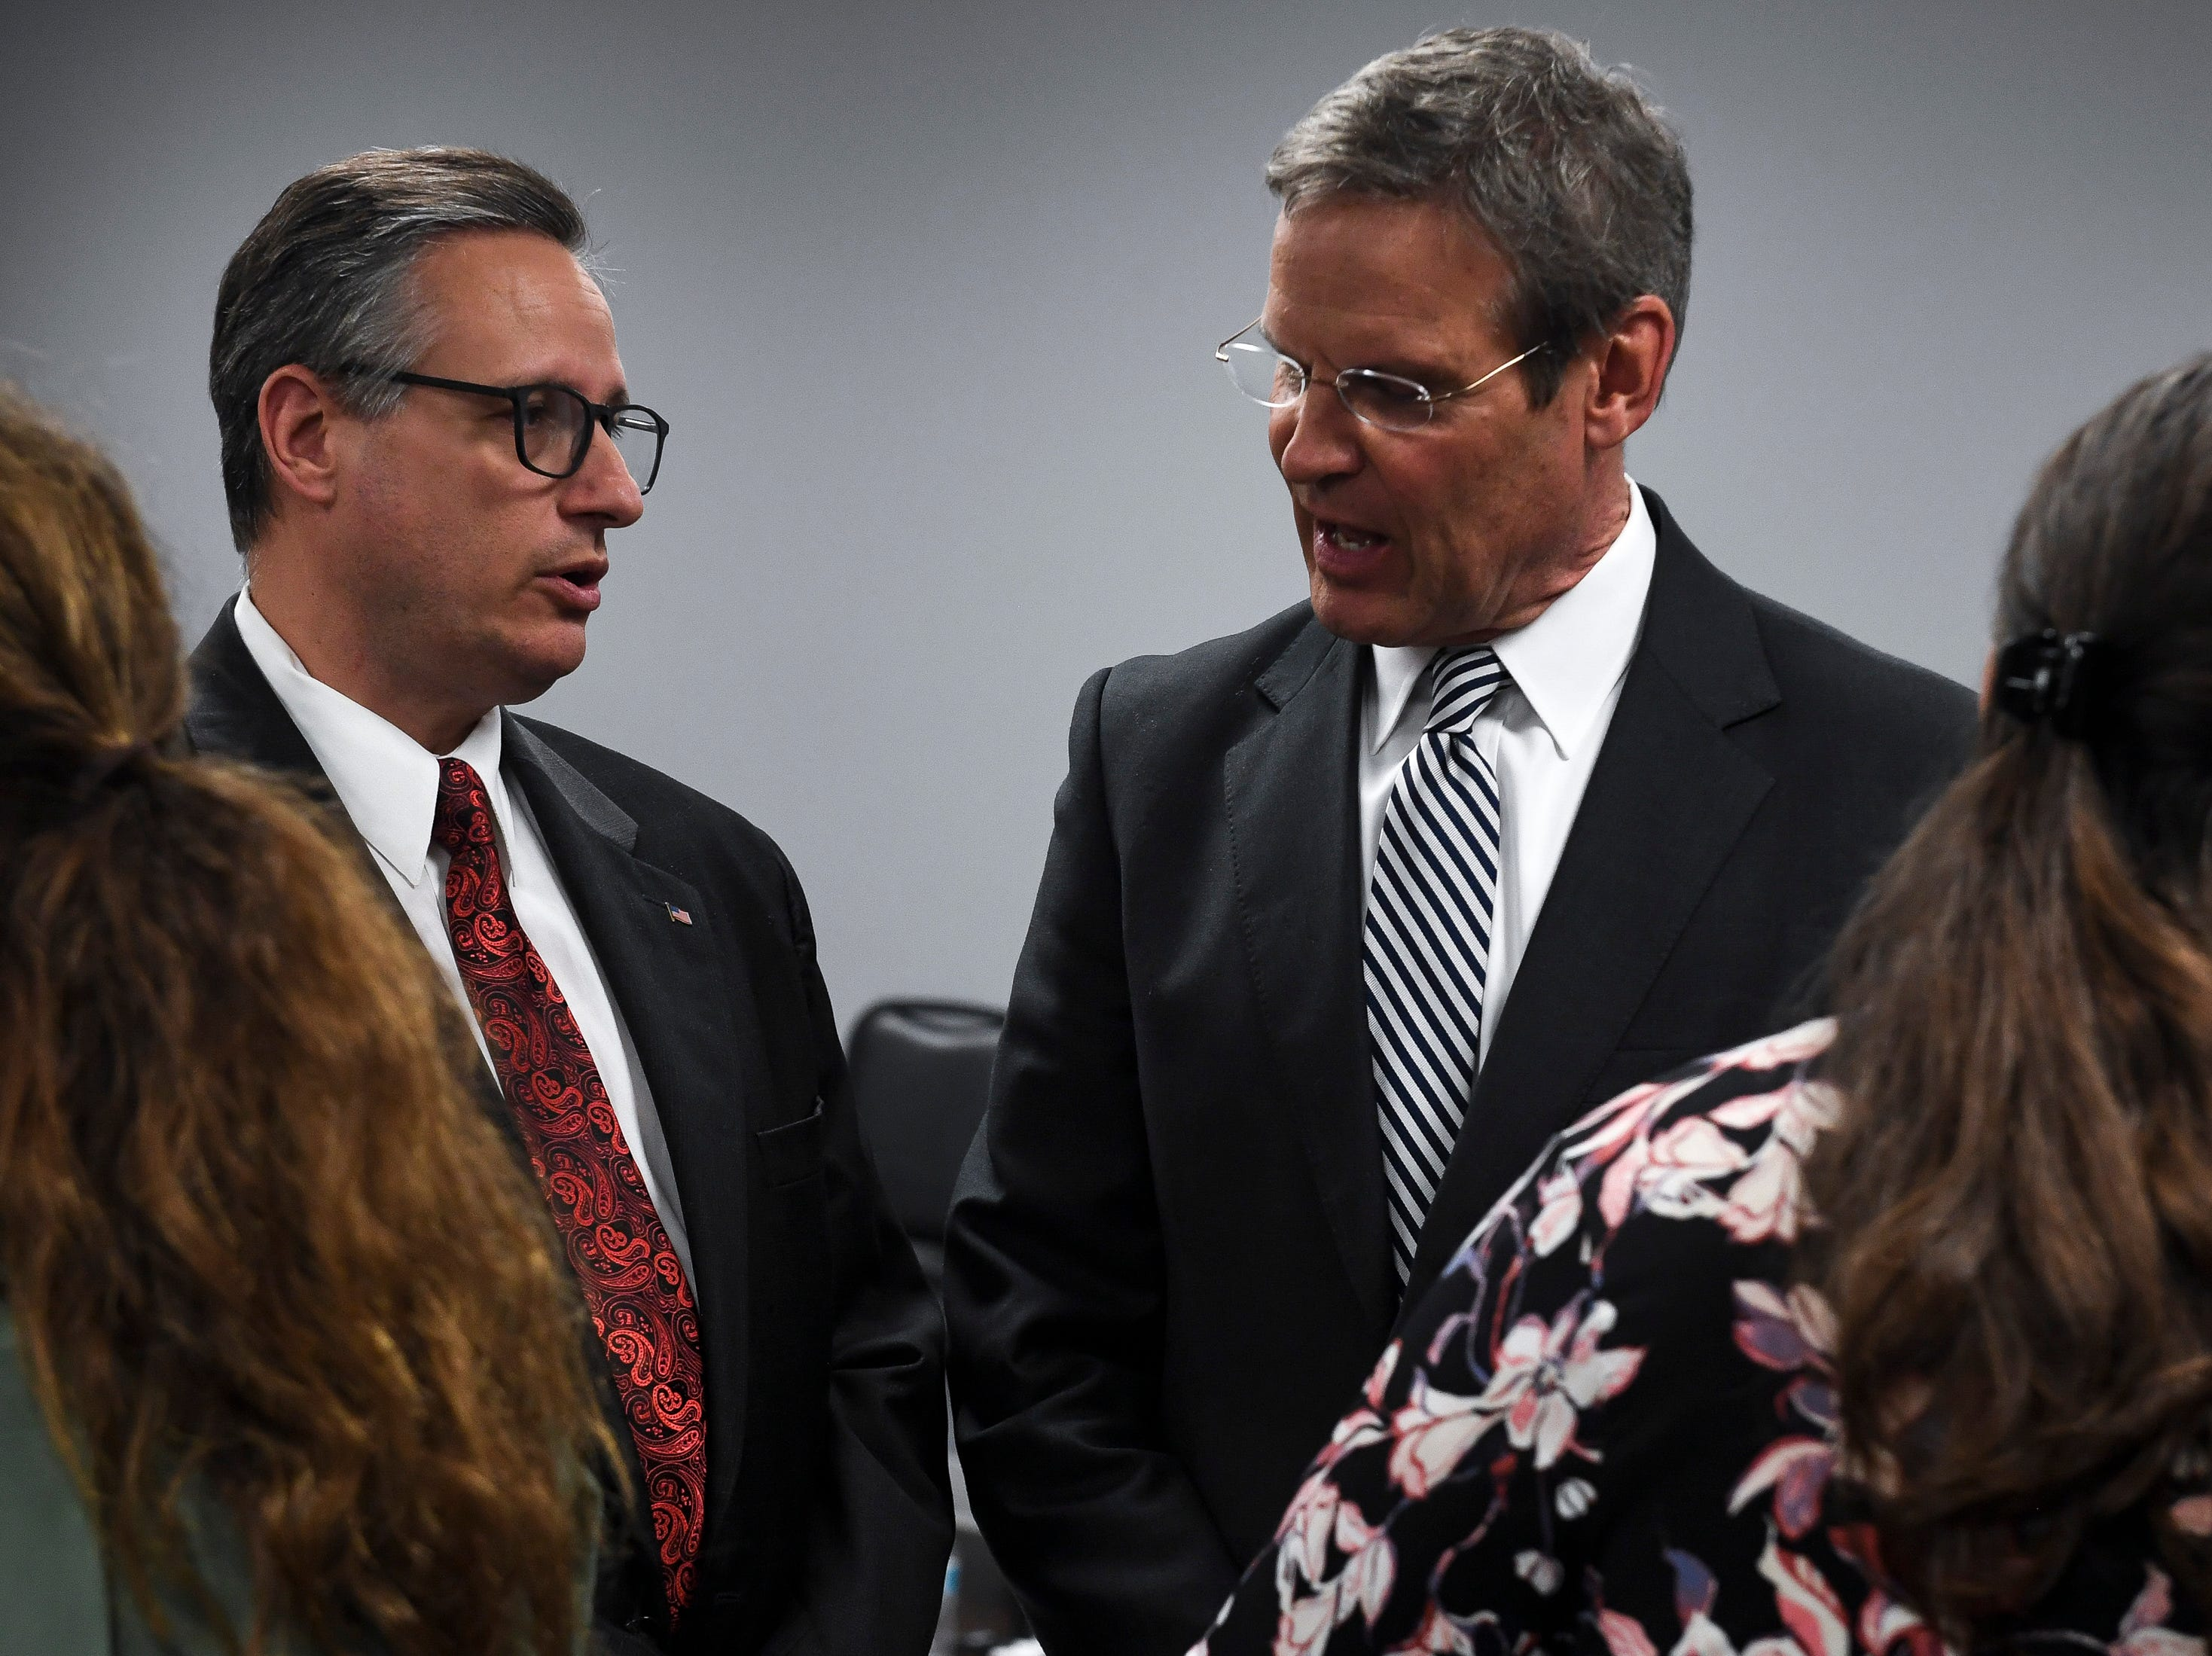 Chris Gatti, left, father of Matthew Gatti, speaks with Tennessee Governor Bill Lee before the funeral service for Tennessee State Trooper Matthew Gatti at West Jackson Baptist Church in Jackson, Tenn., Monday, May 13, 2019. Gatti died in the line of duty in an accident while responding to a car fire on I-40 in Madison County on May 6.